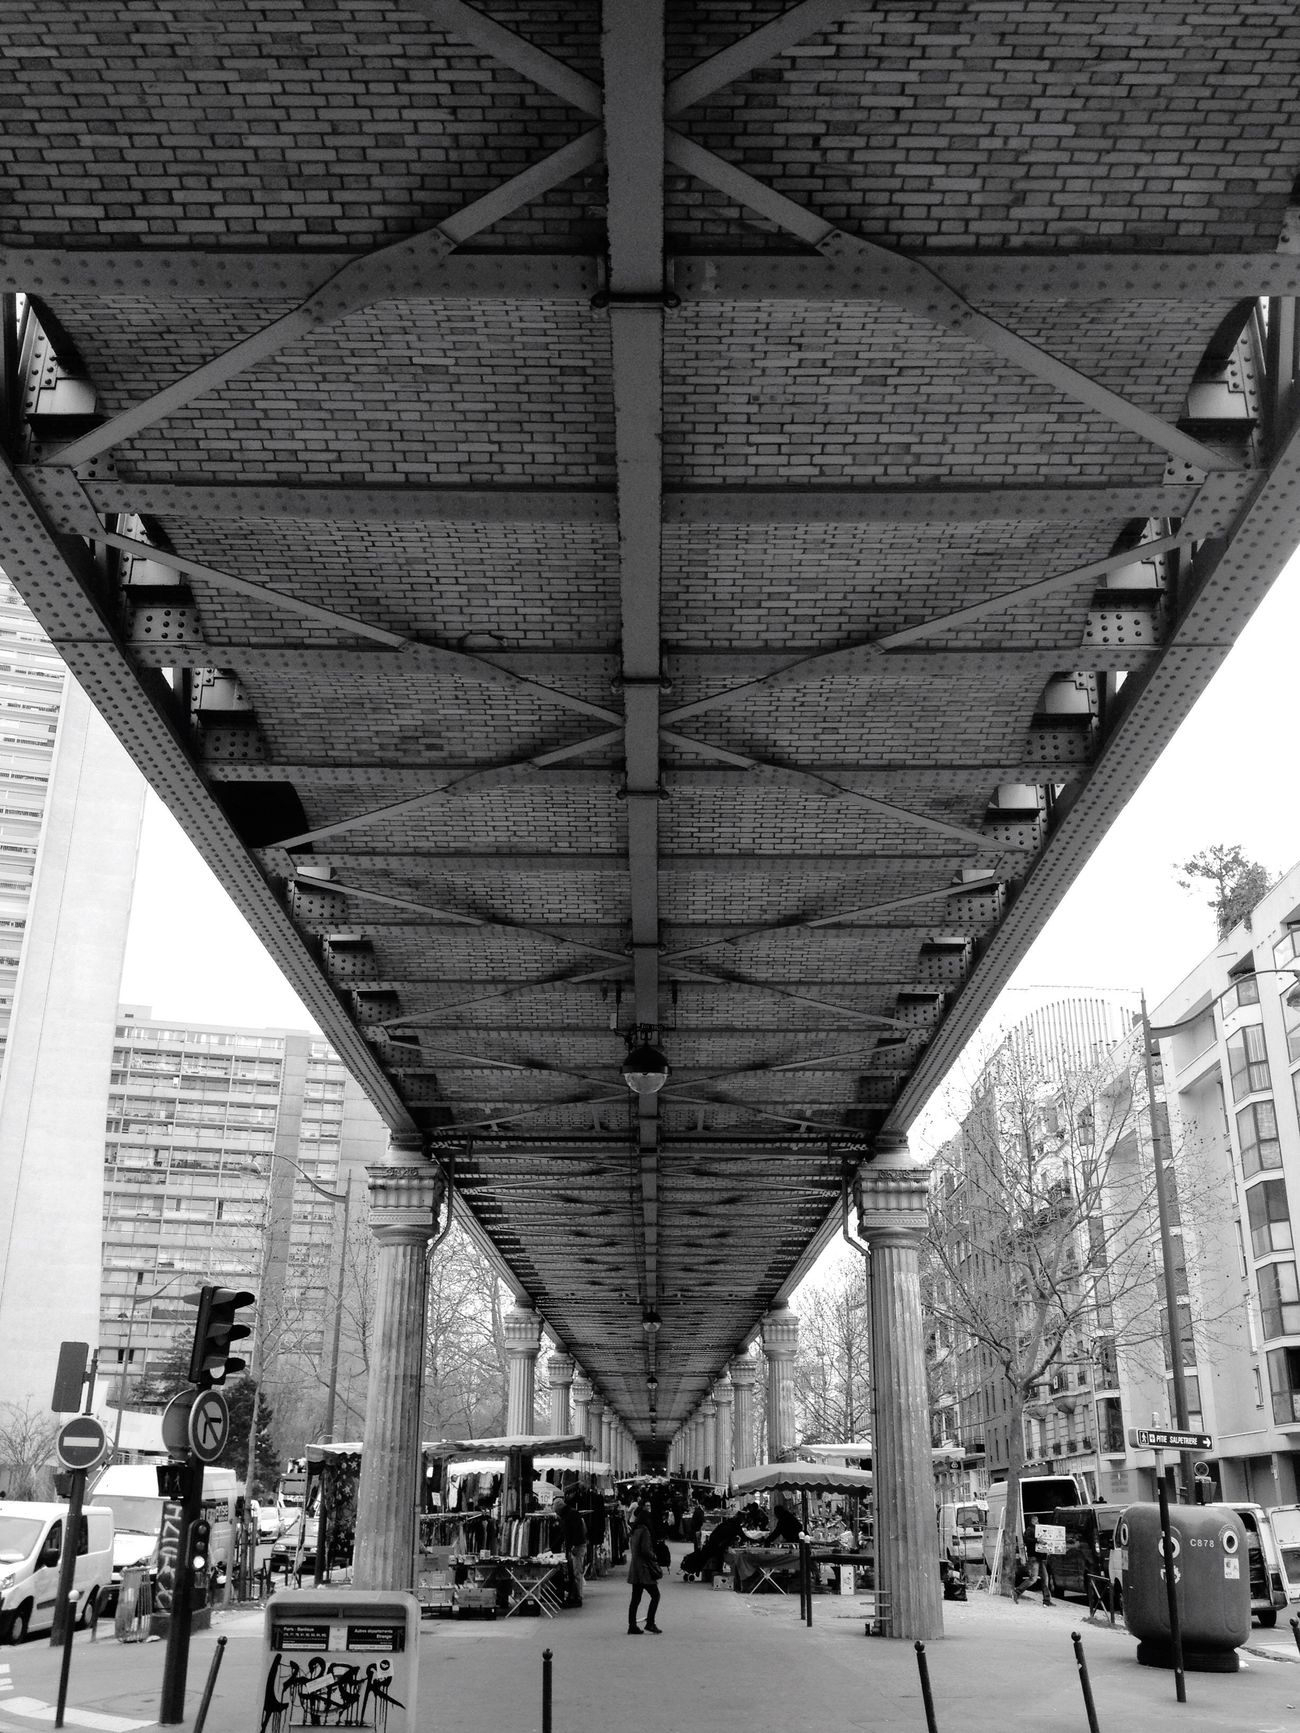 Underneath The Bridge on the way to watch Arsenalfc  at the Pub . Architecture Building Railway Train Bridge Paris Vanishing Point